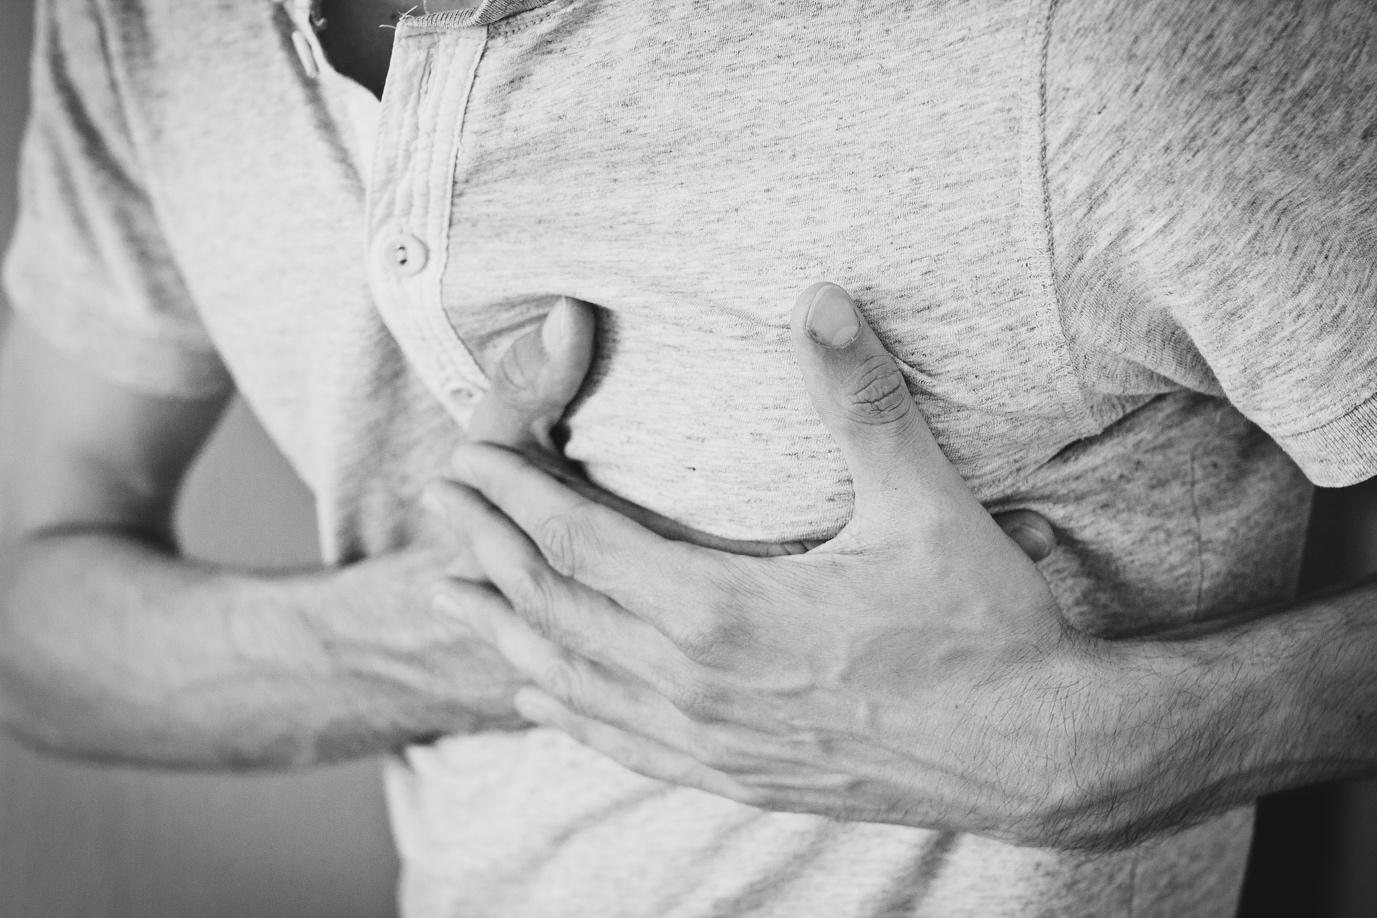 A person clutching their chest due to severe angina pain